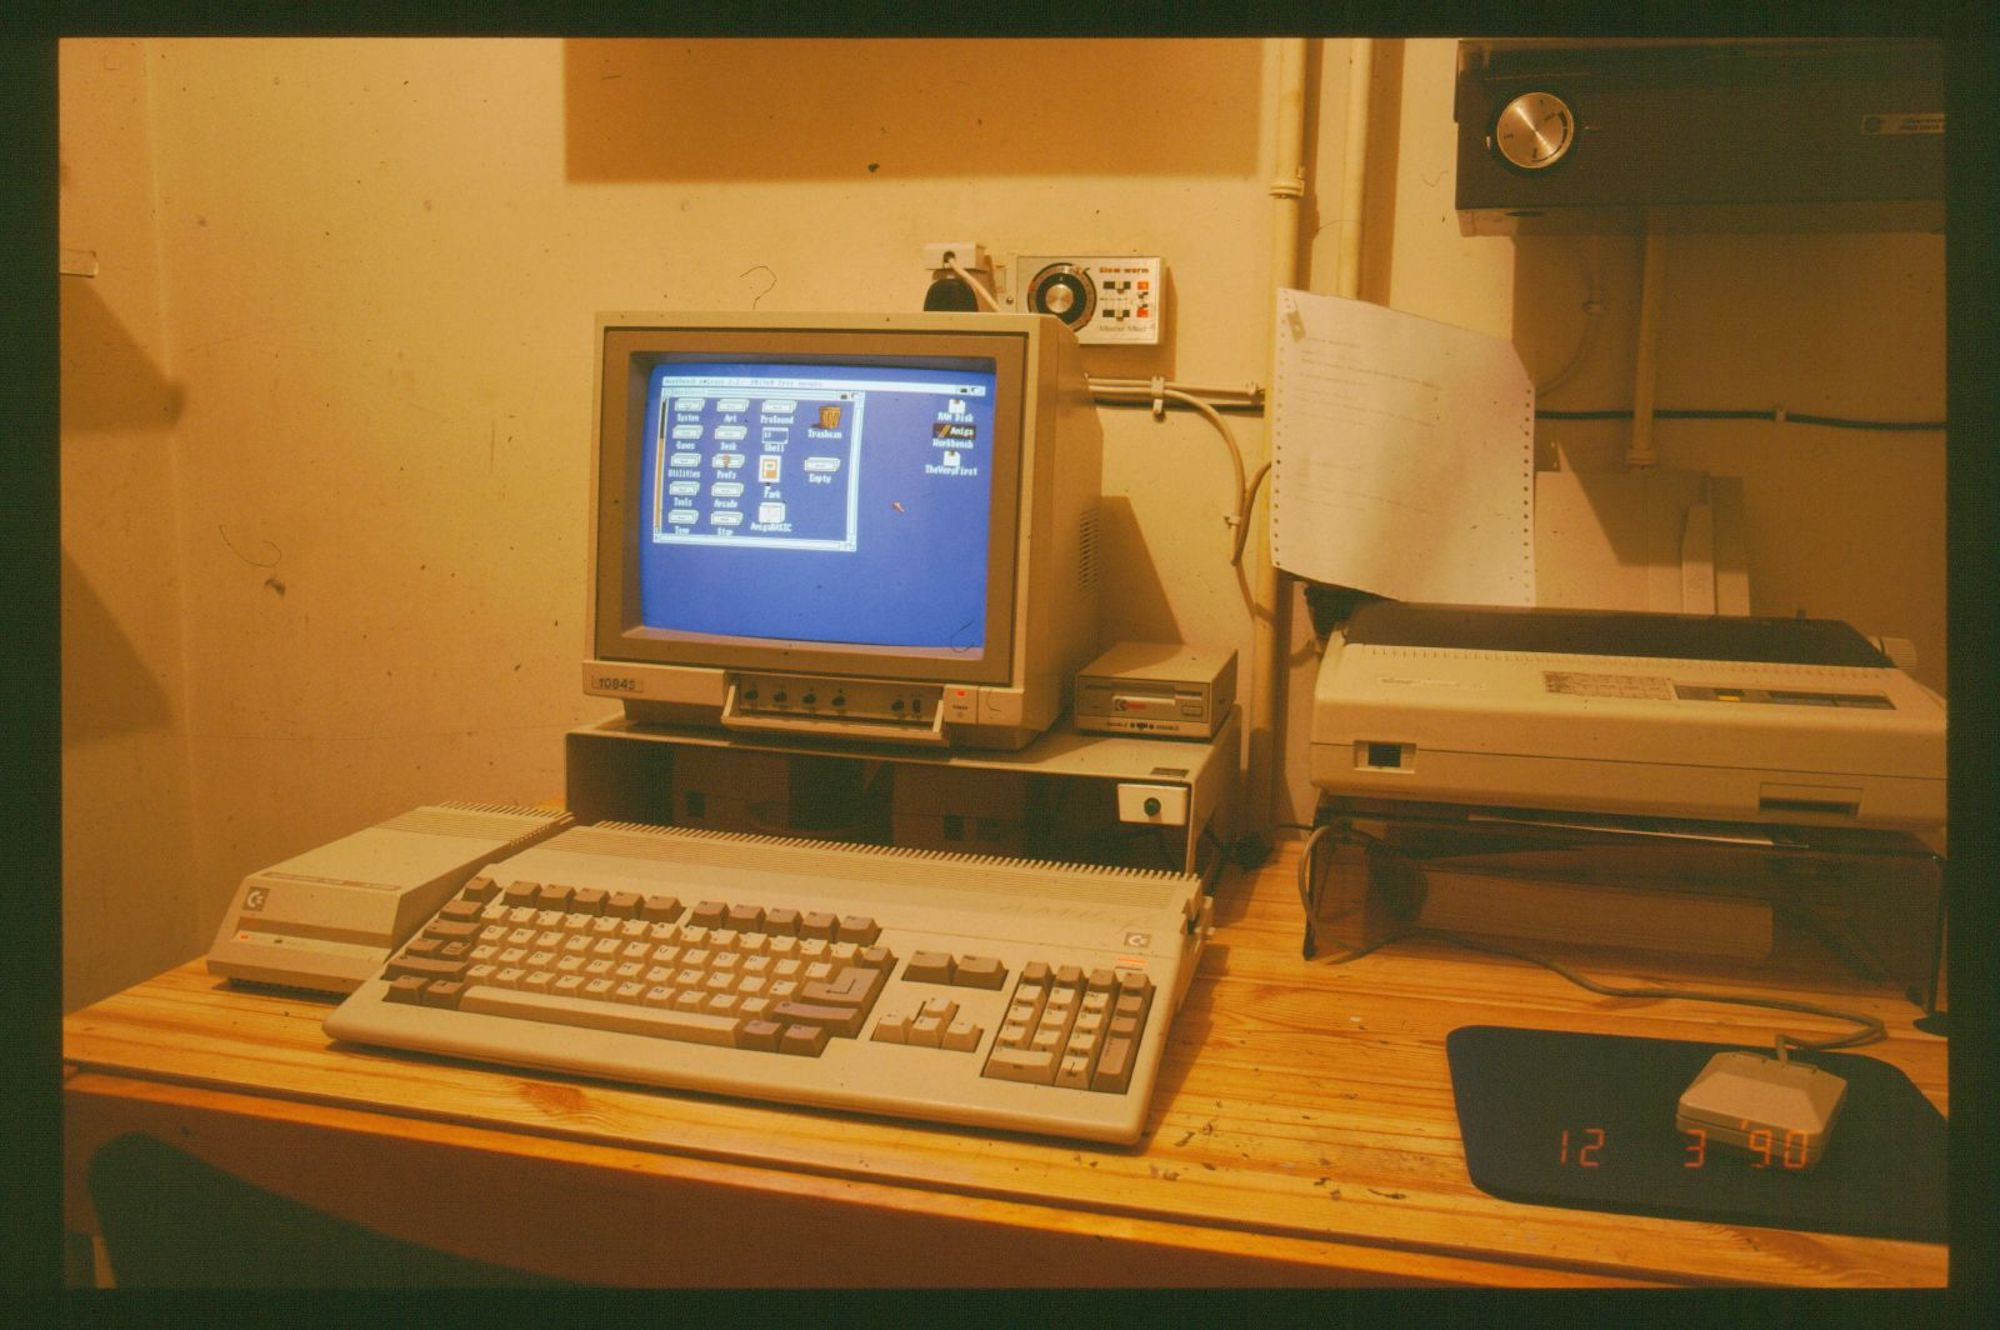 Two emulators to remember the best of Amiga and Commodore 64